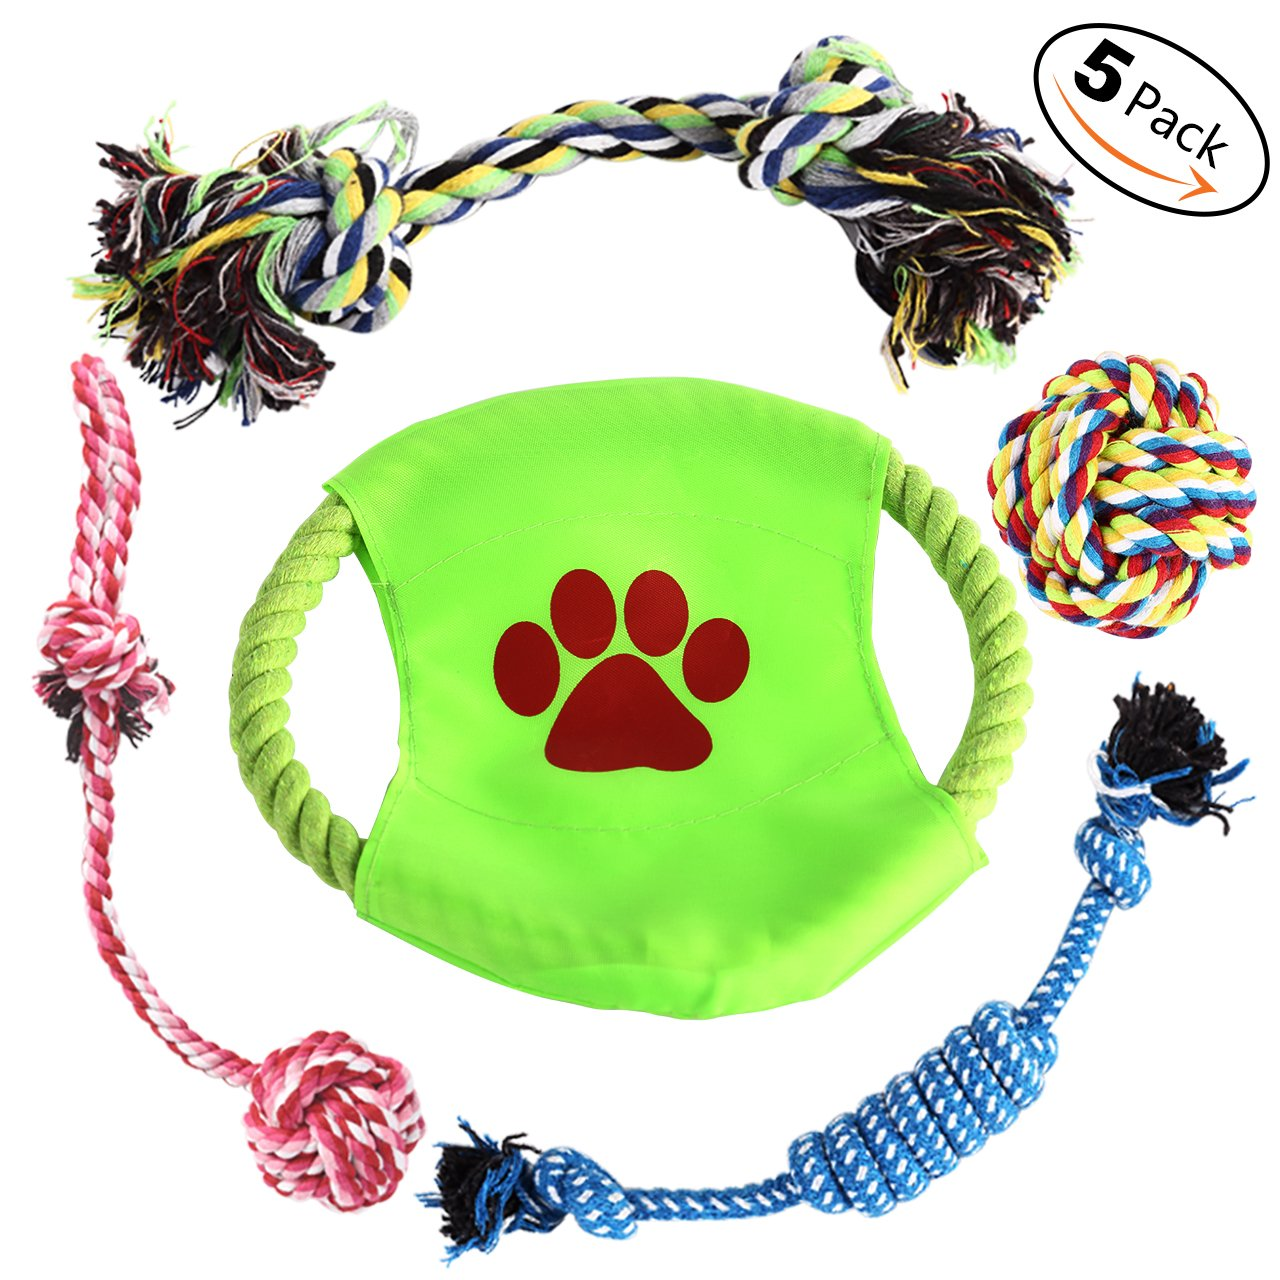 Aipper Dog Rope Toys 5 Pack, Dog Chew Toys, Variety Puppy Teething Toys for Medium to Small Doggie (Random Colors)